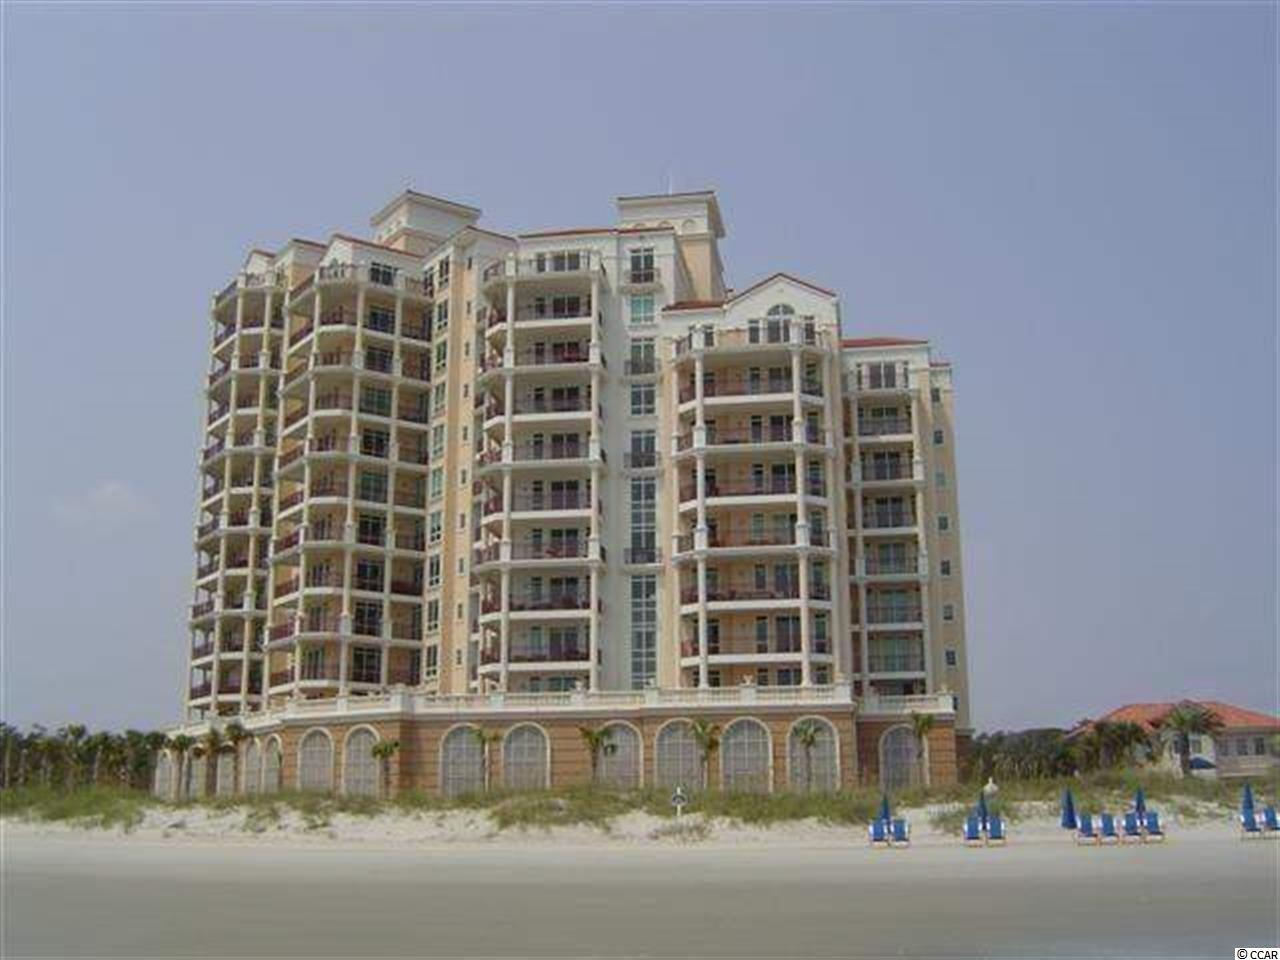 myrtle beach north end oceanfront condos for sale myrtle beach real